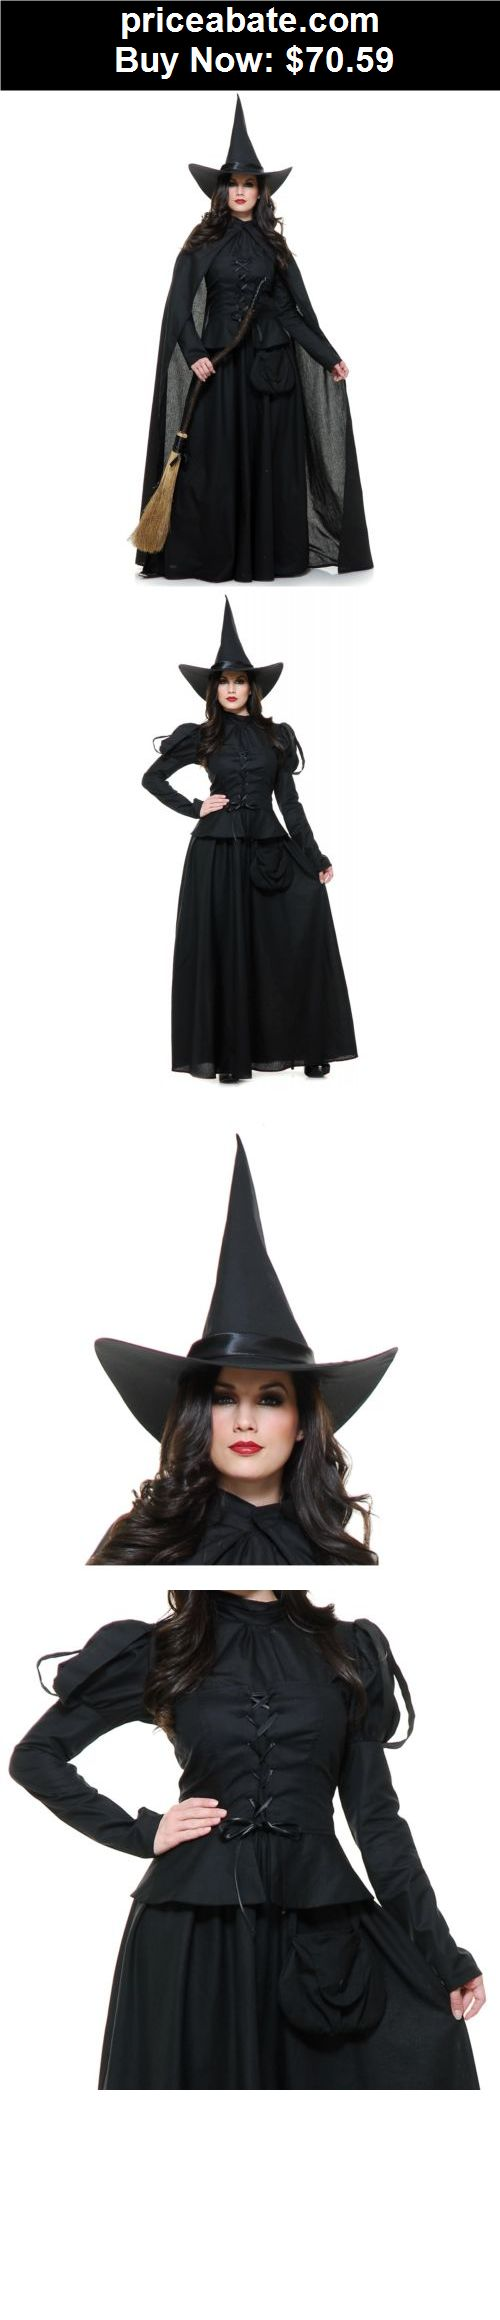 Women-Costumes: Wicked Witch Costume Adult Halloween Fancy Dress - BUY IT NOW ONLY $70.59